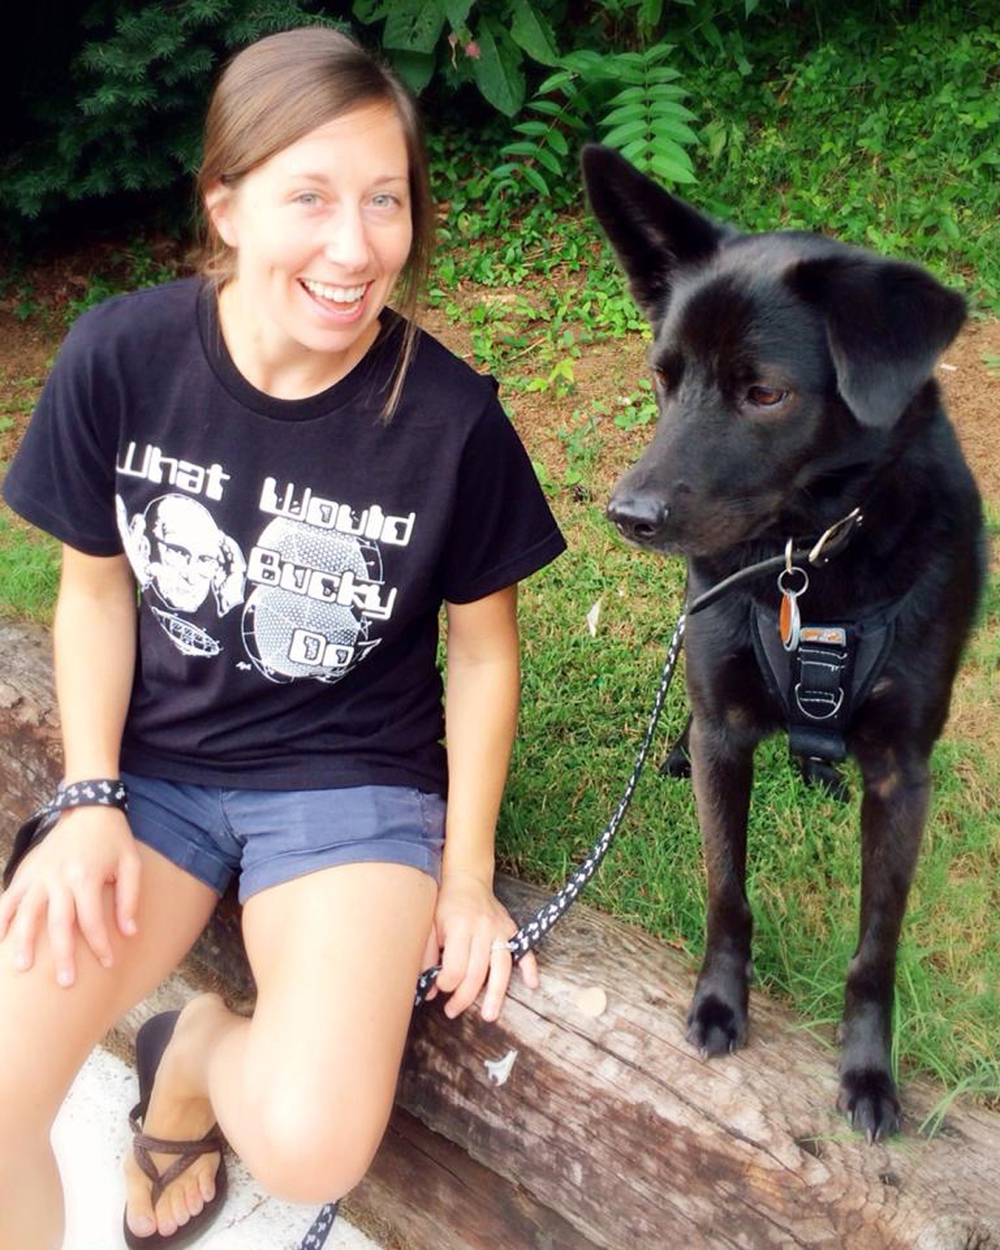 Danielle sporting her Buckminster Fuller t-shirt with our dog Buckminster Fuller Ramos.   A.K.A. Minster.